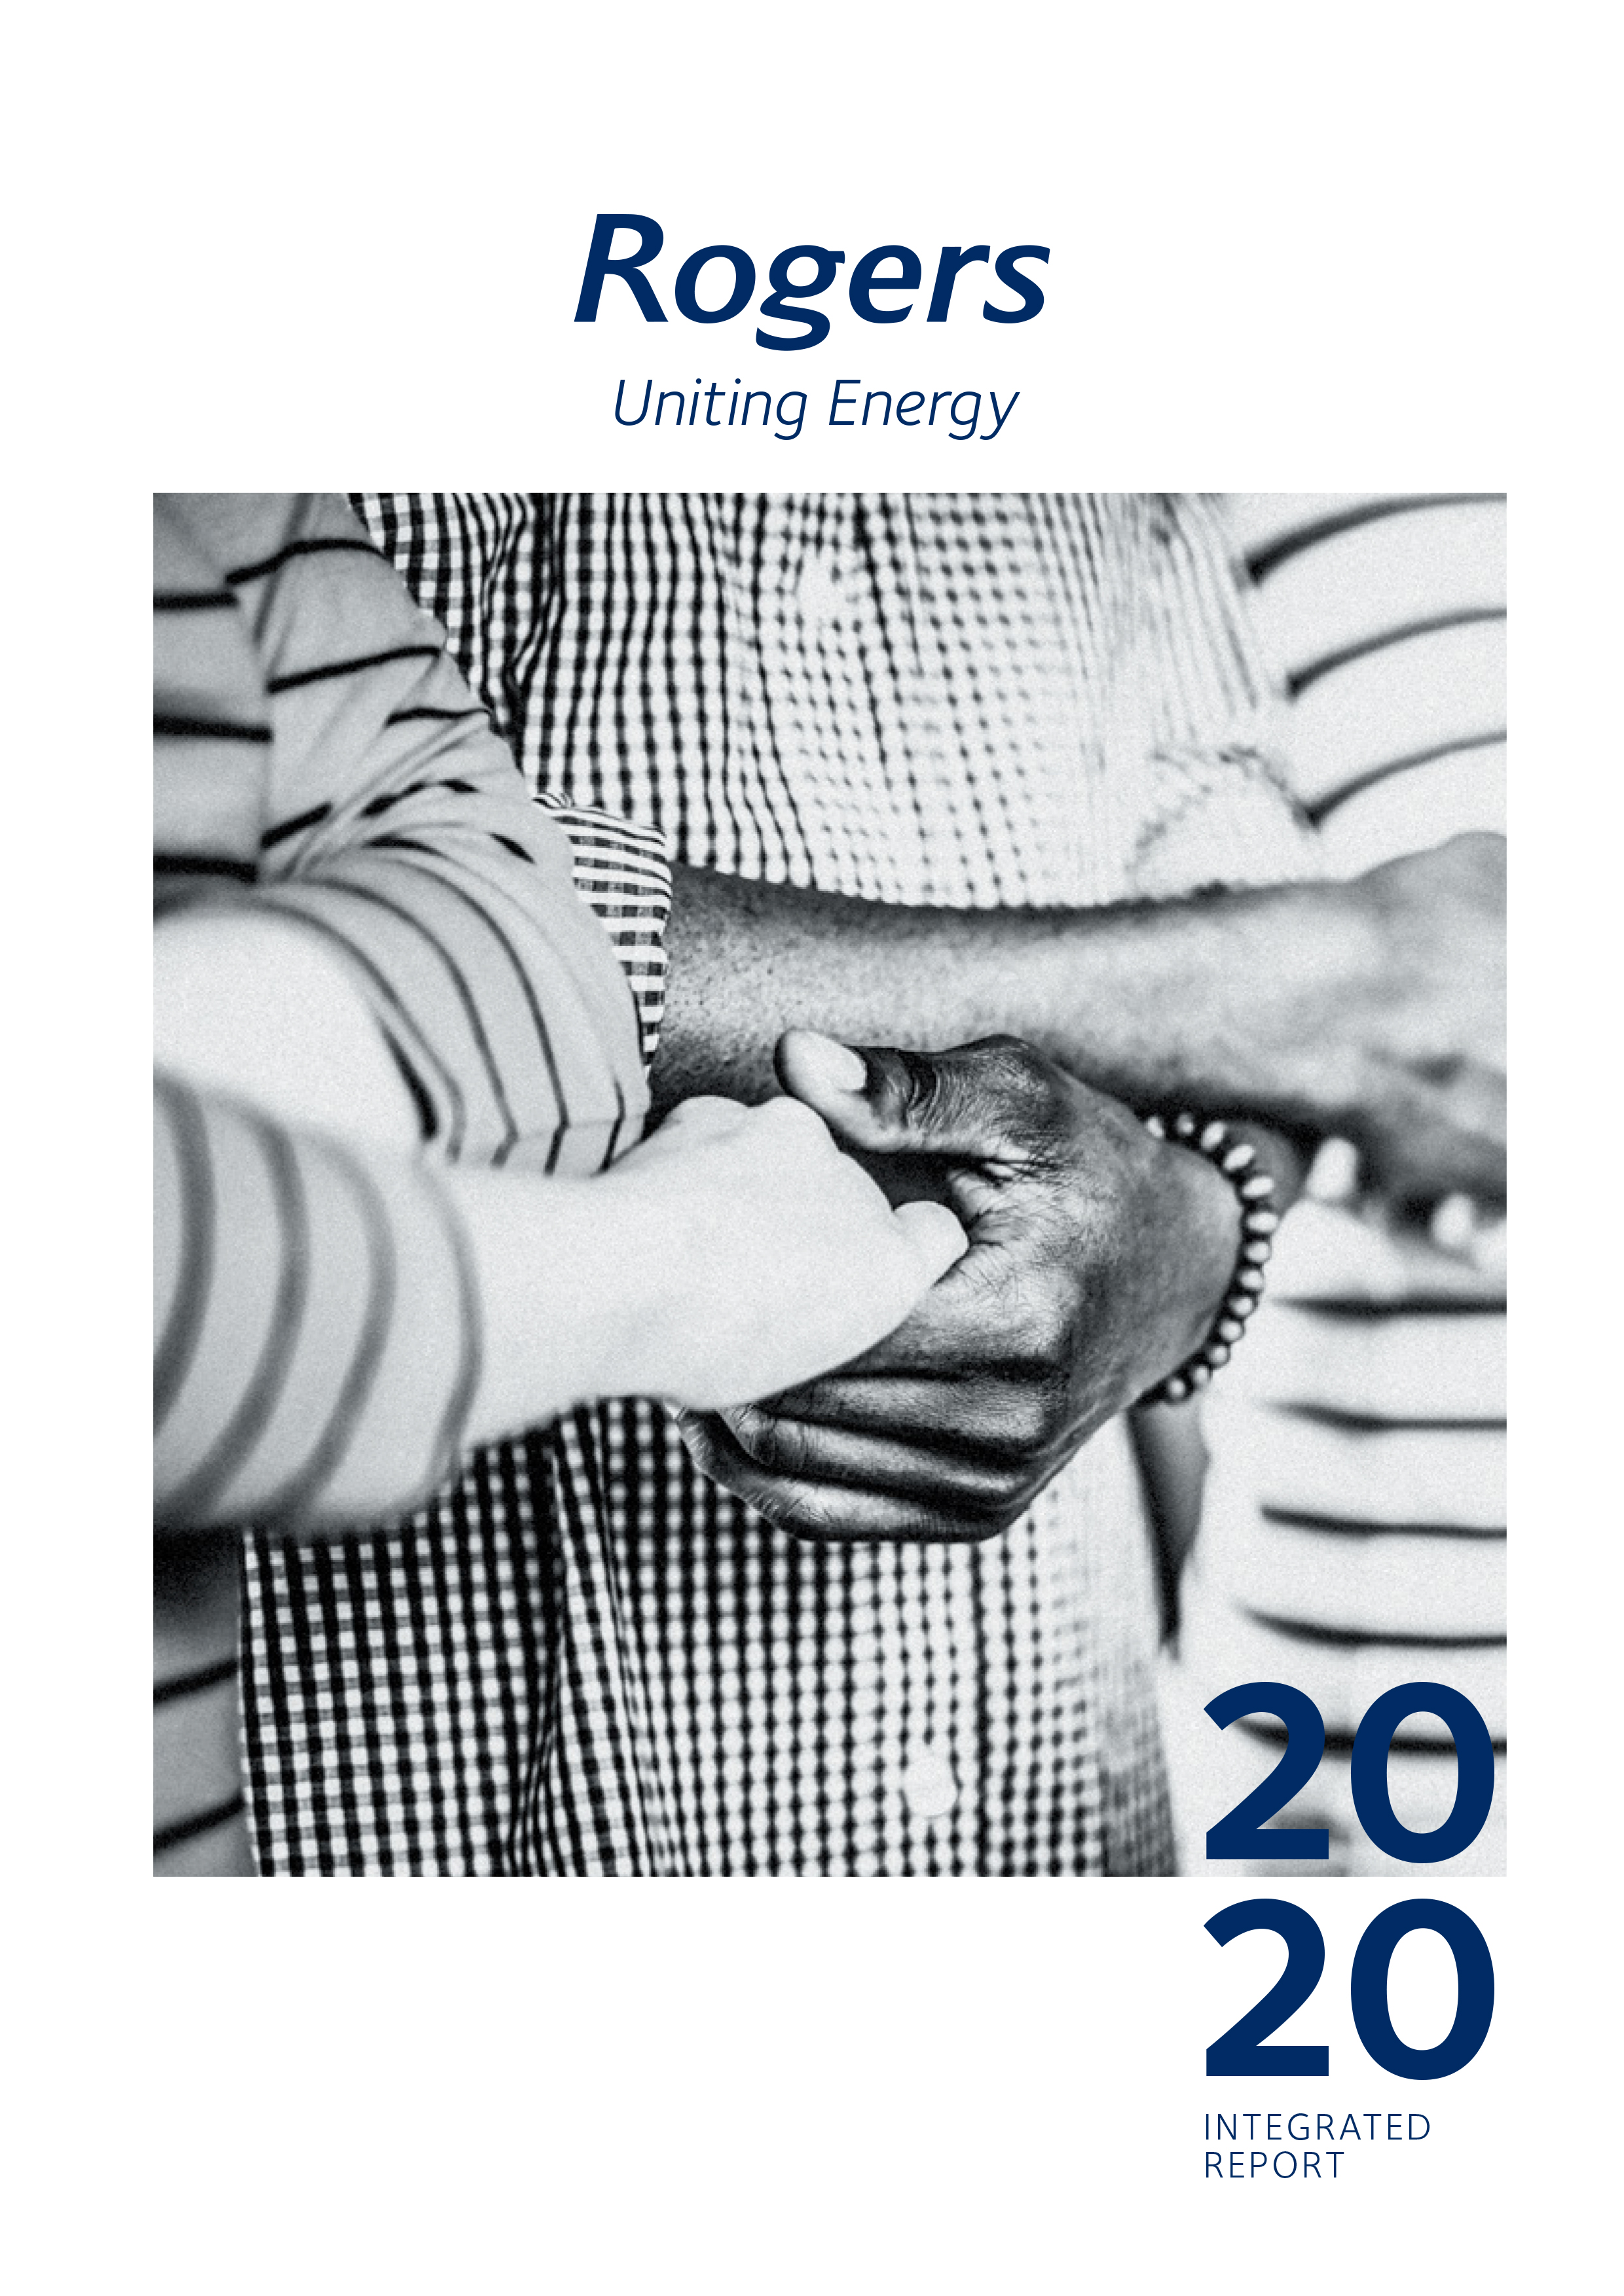 Rogers Annual Report 2020